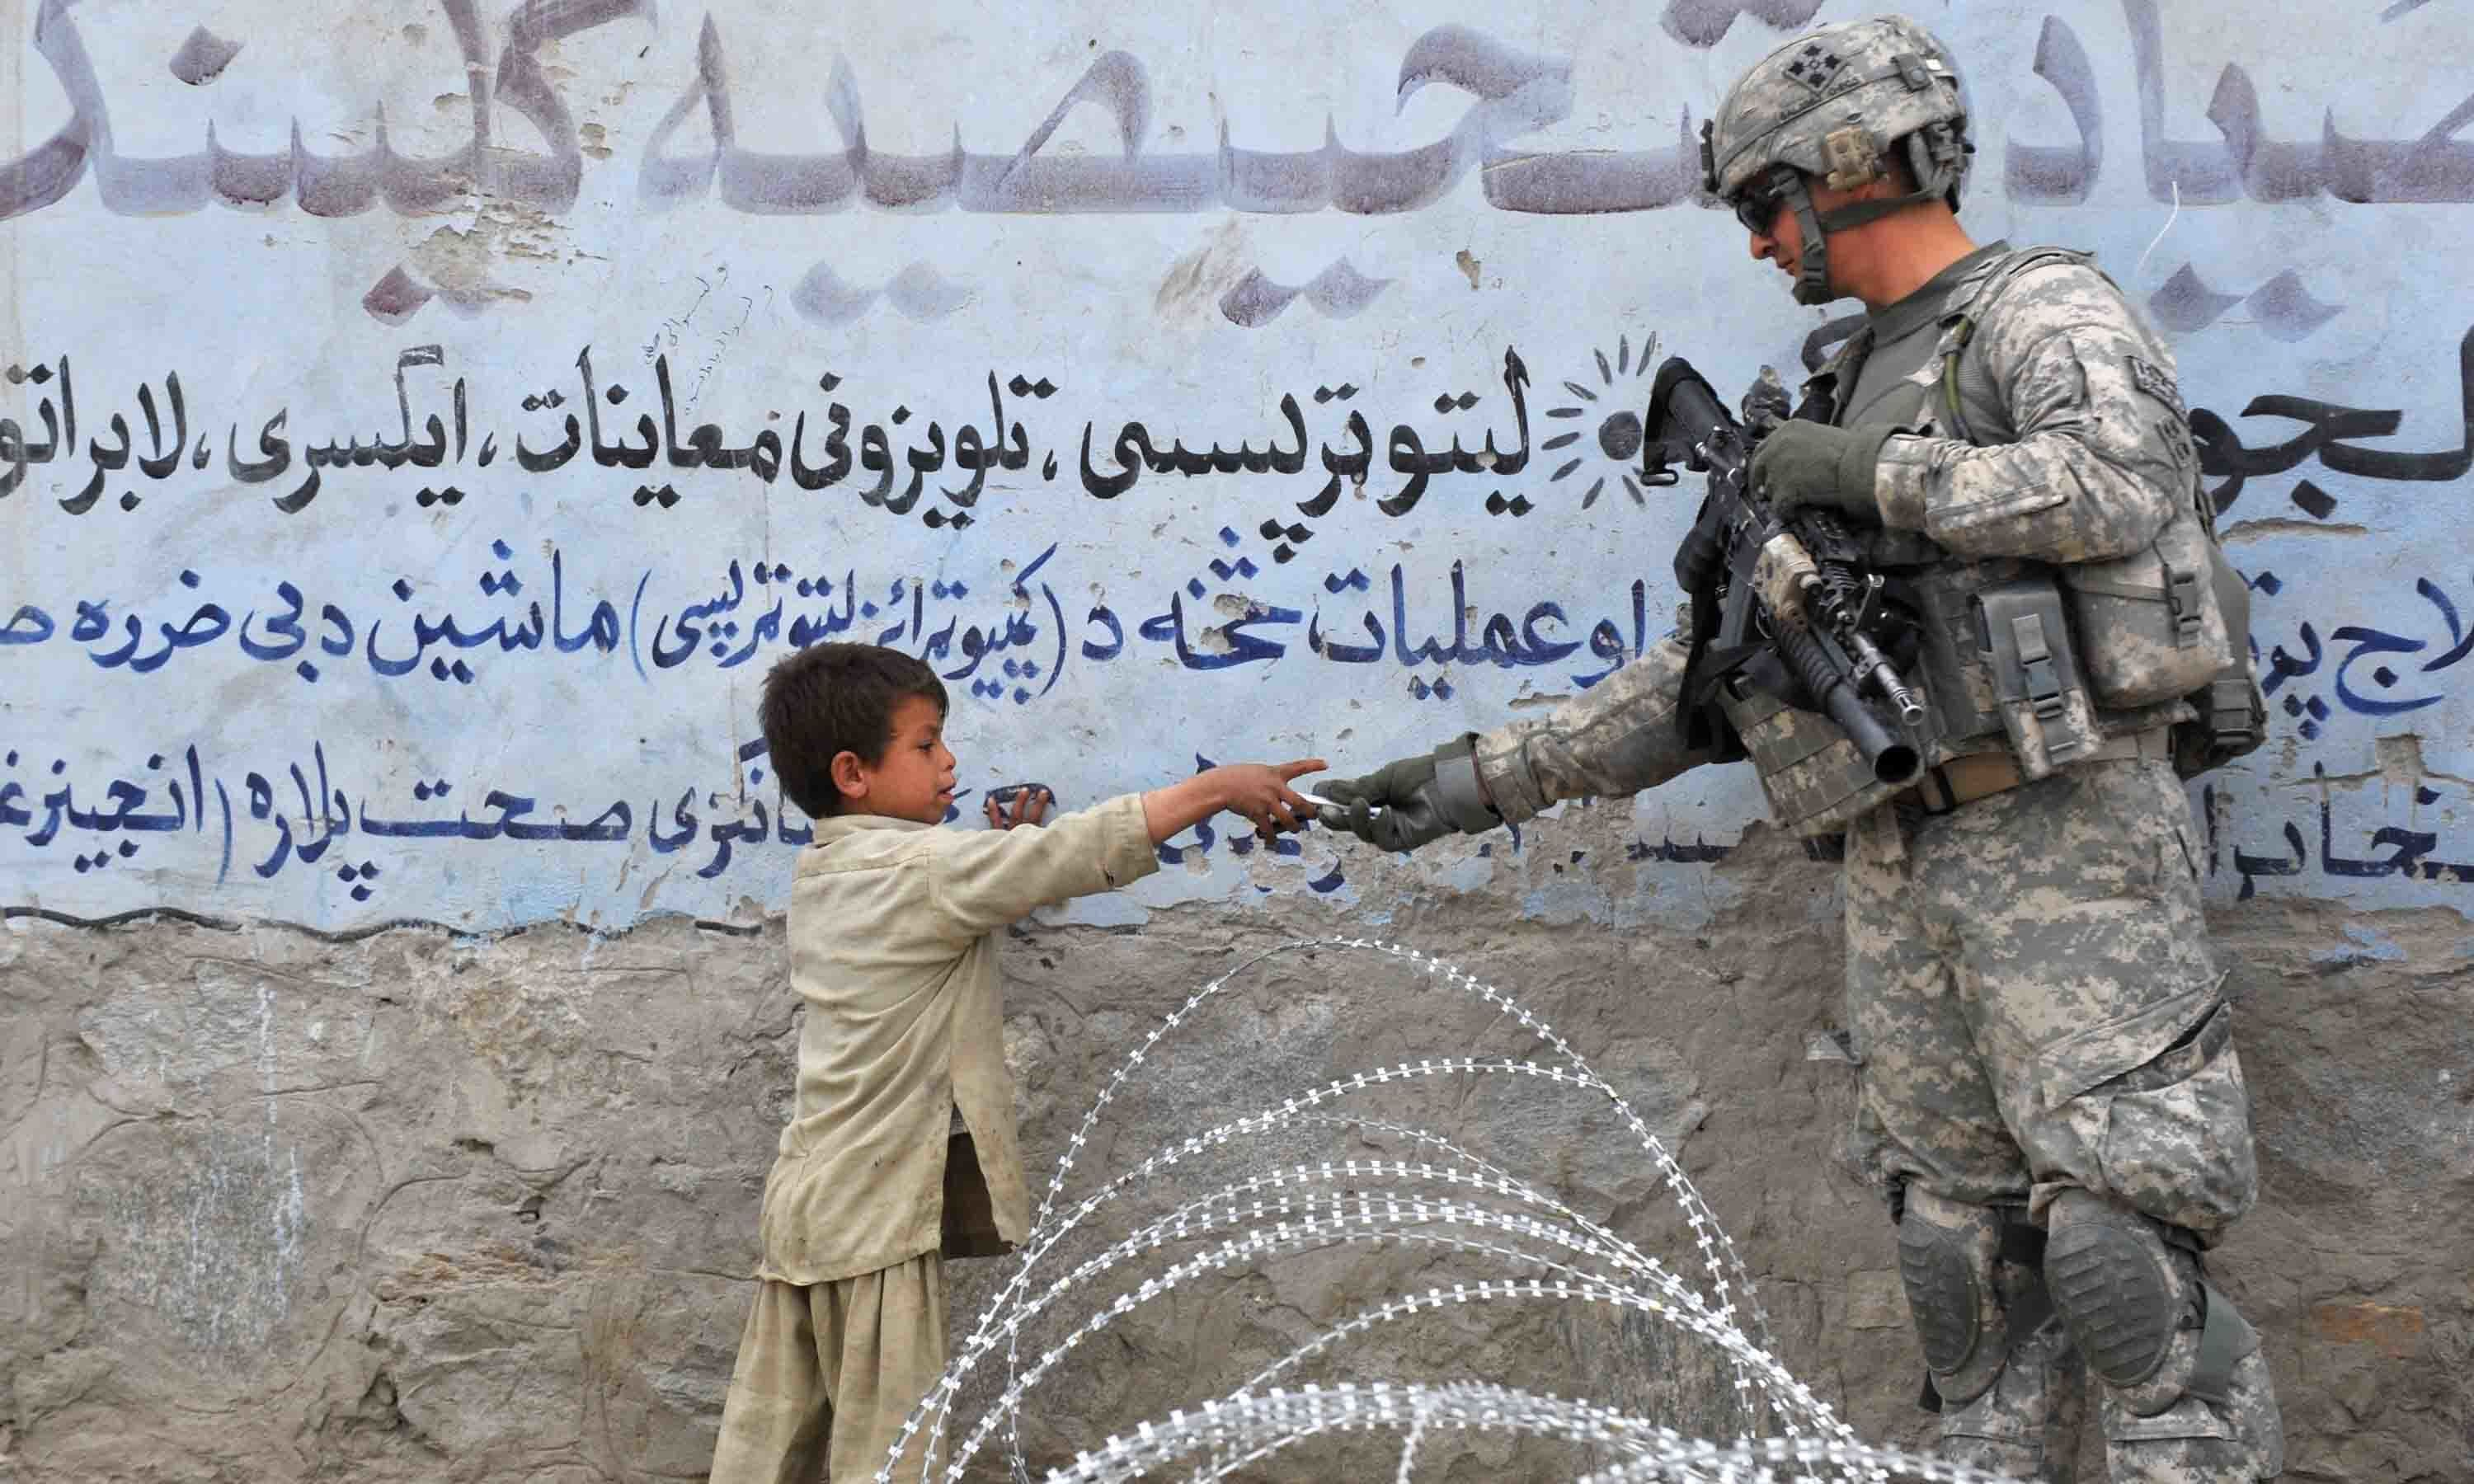 The US pullout from Afghanistan is more than 50 per cent complete, the Pentagon said on Tuesday, as it approaches its Sept 11 deadline to remove troops. — AFP